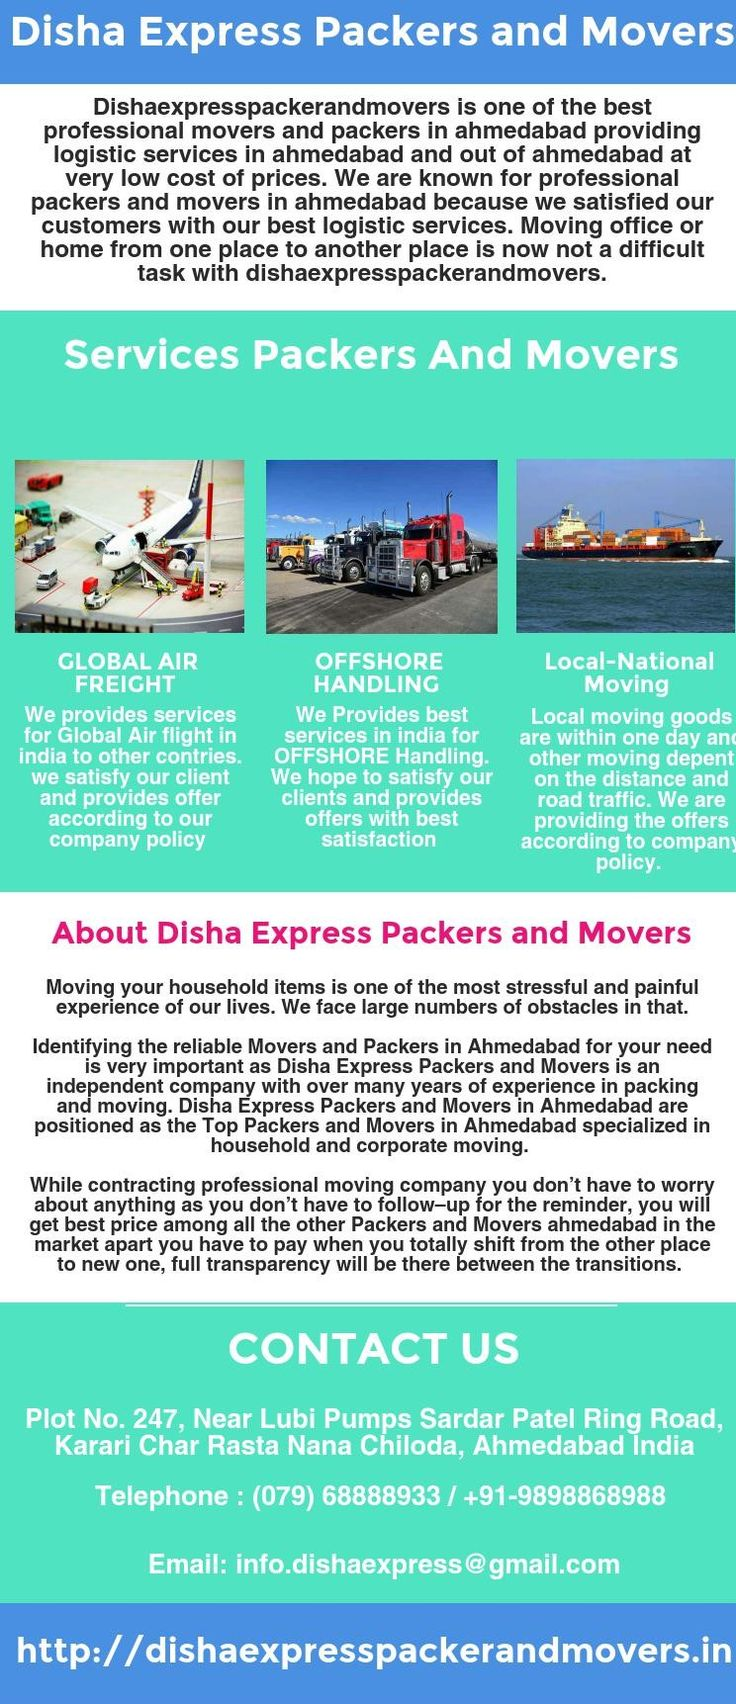 Dishaexpresspackerandmovers is one of the best professional packers and movers in Ahmedabad. If you are looking to move to or from ahmedabad then choose reliable local packers and movers. We provide quality of service including household shifting, office shifting, loading and unloading service at affordable cost of price. We also provide corporate moving service, moving and storage service in Ahmedabad.